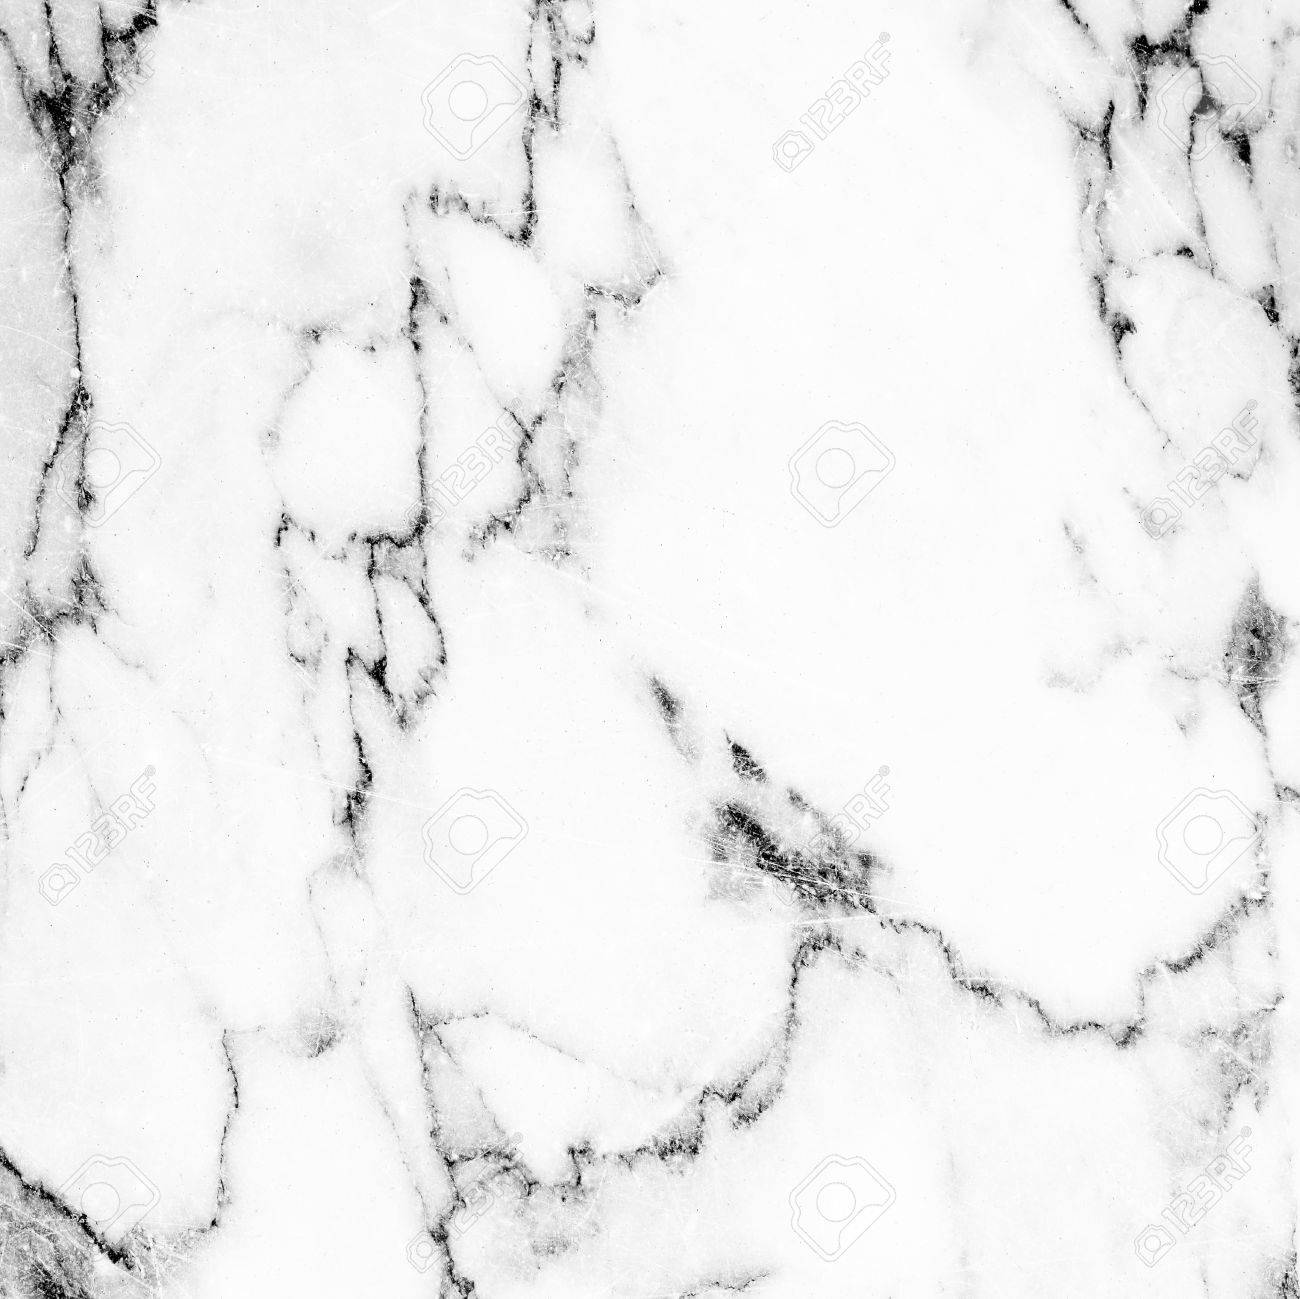 White Marble Texture Background Pattern With High Resolution Stock Photo Picture And Royalty Free Image Image 52998704